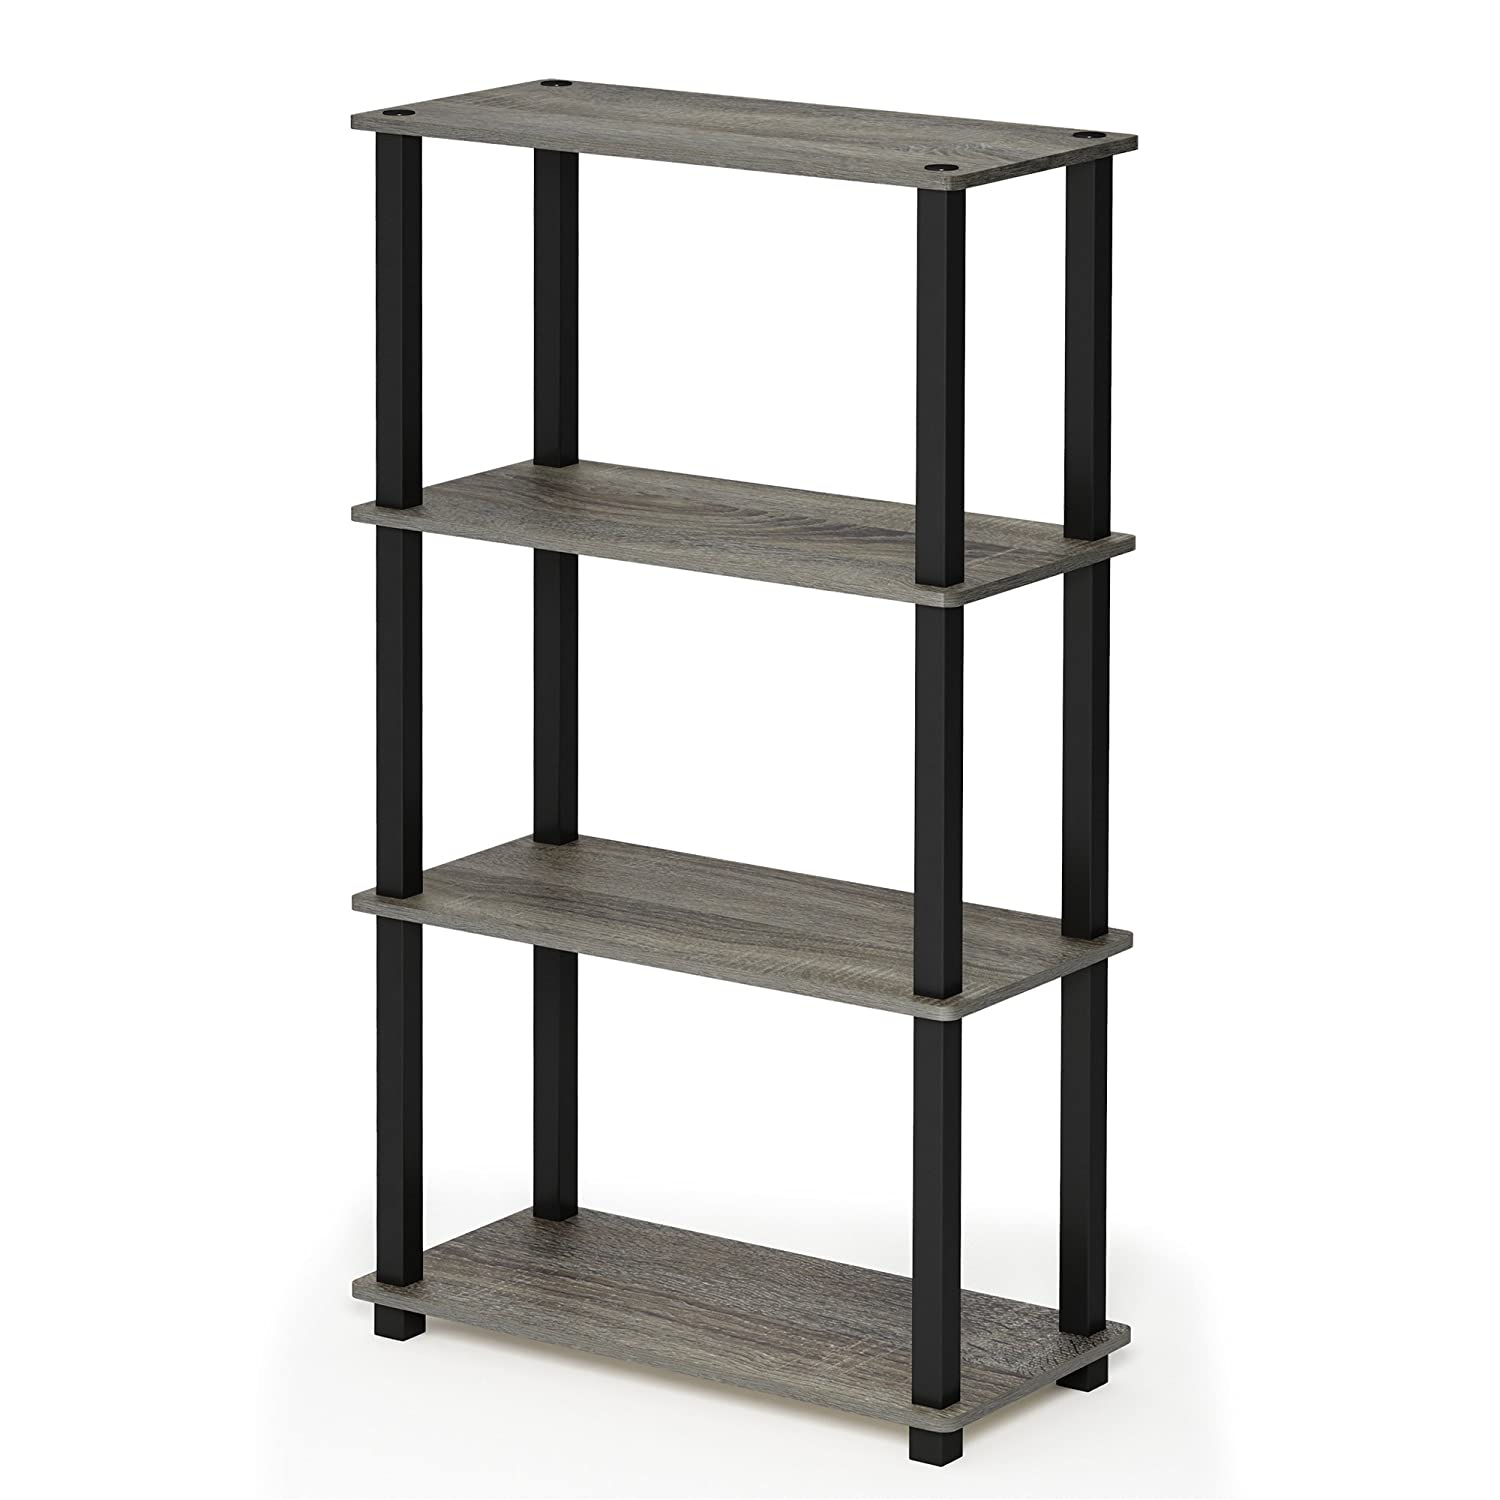 French Oak Grey Black 4-Tier Square Tubes Furinno 17091BE WH Turn-N-Tube 5-Tier Compact Multipurpose Shelf, Single, Beech White